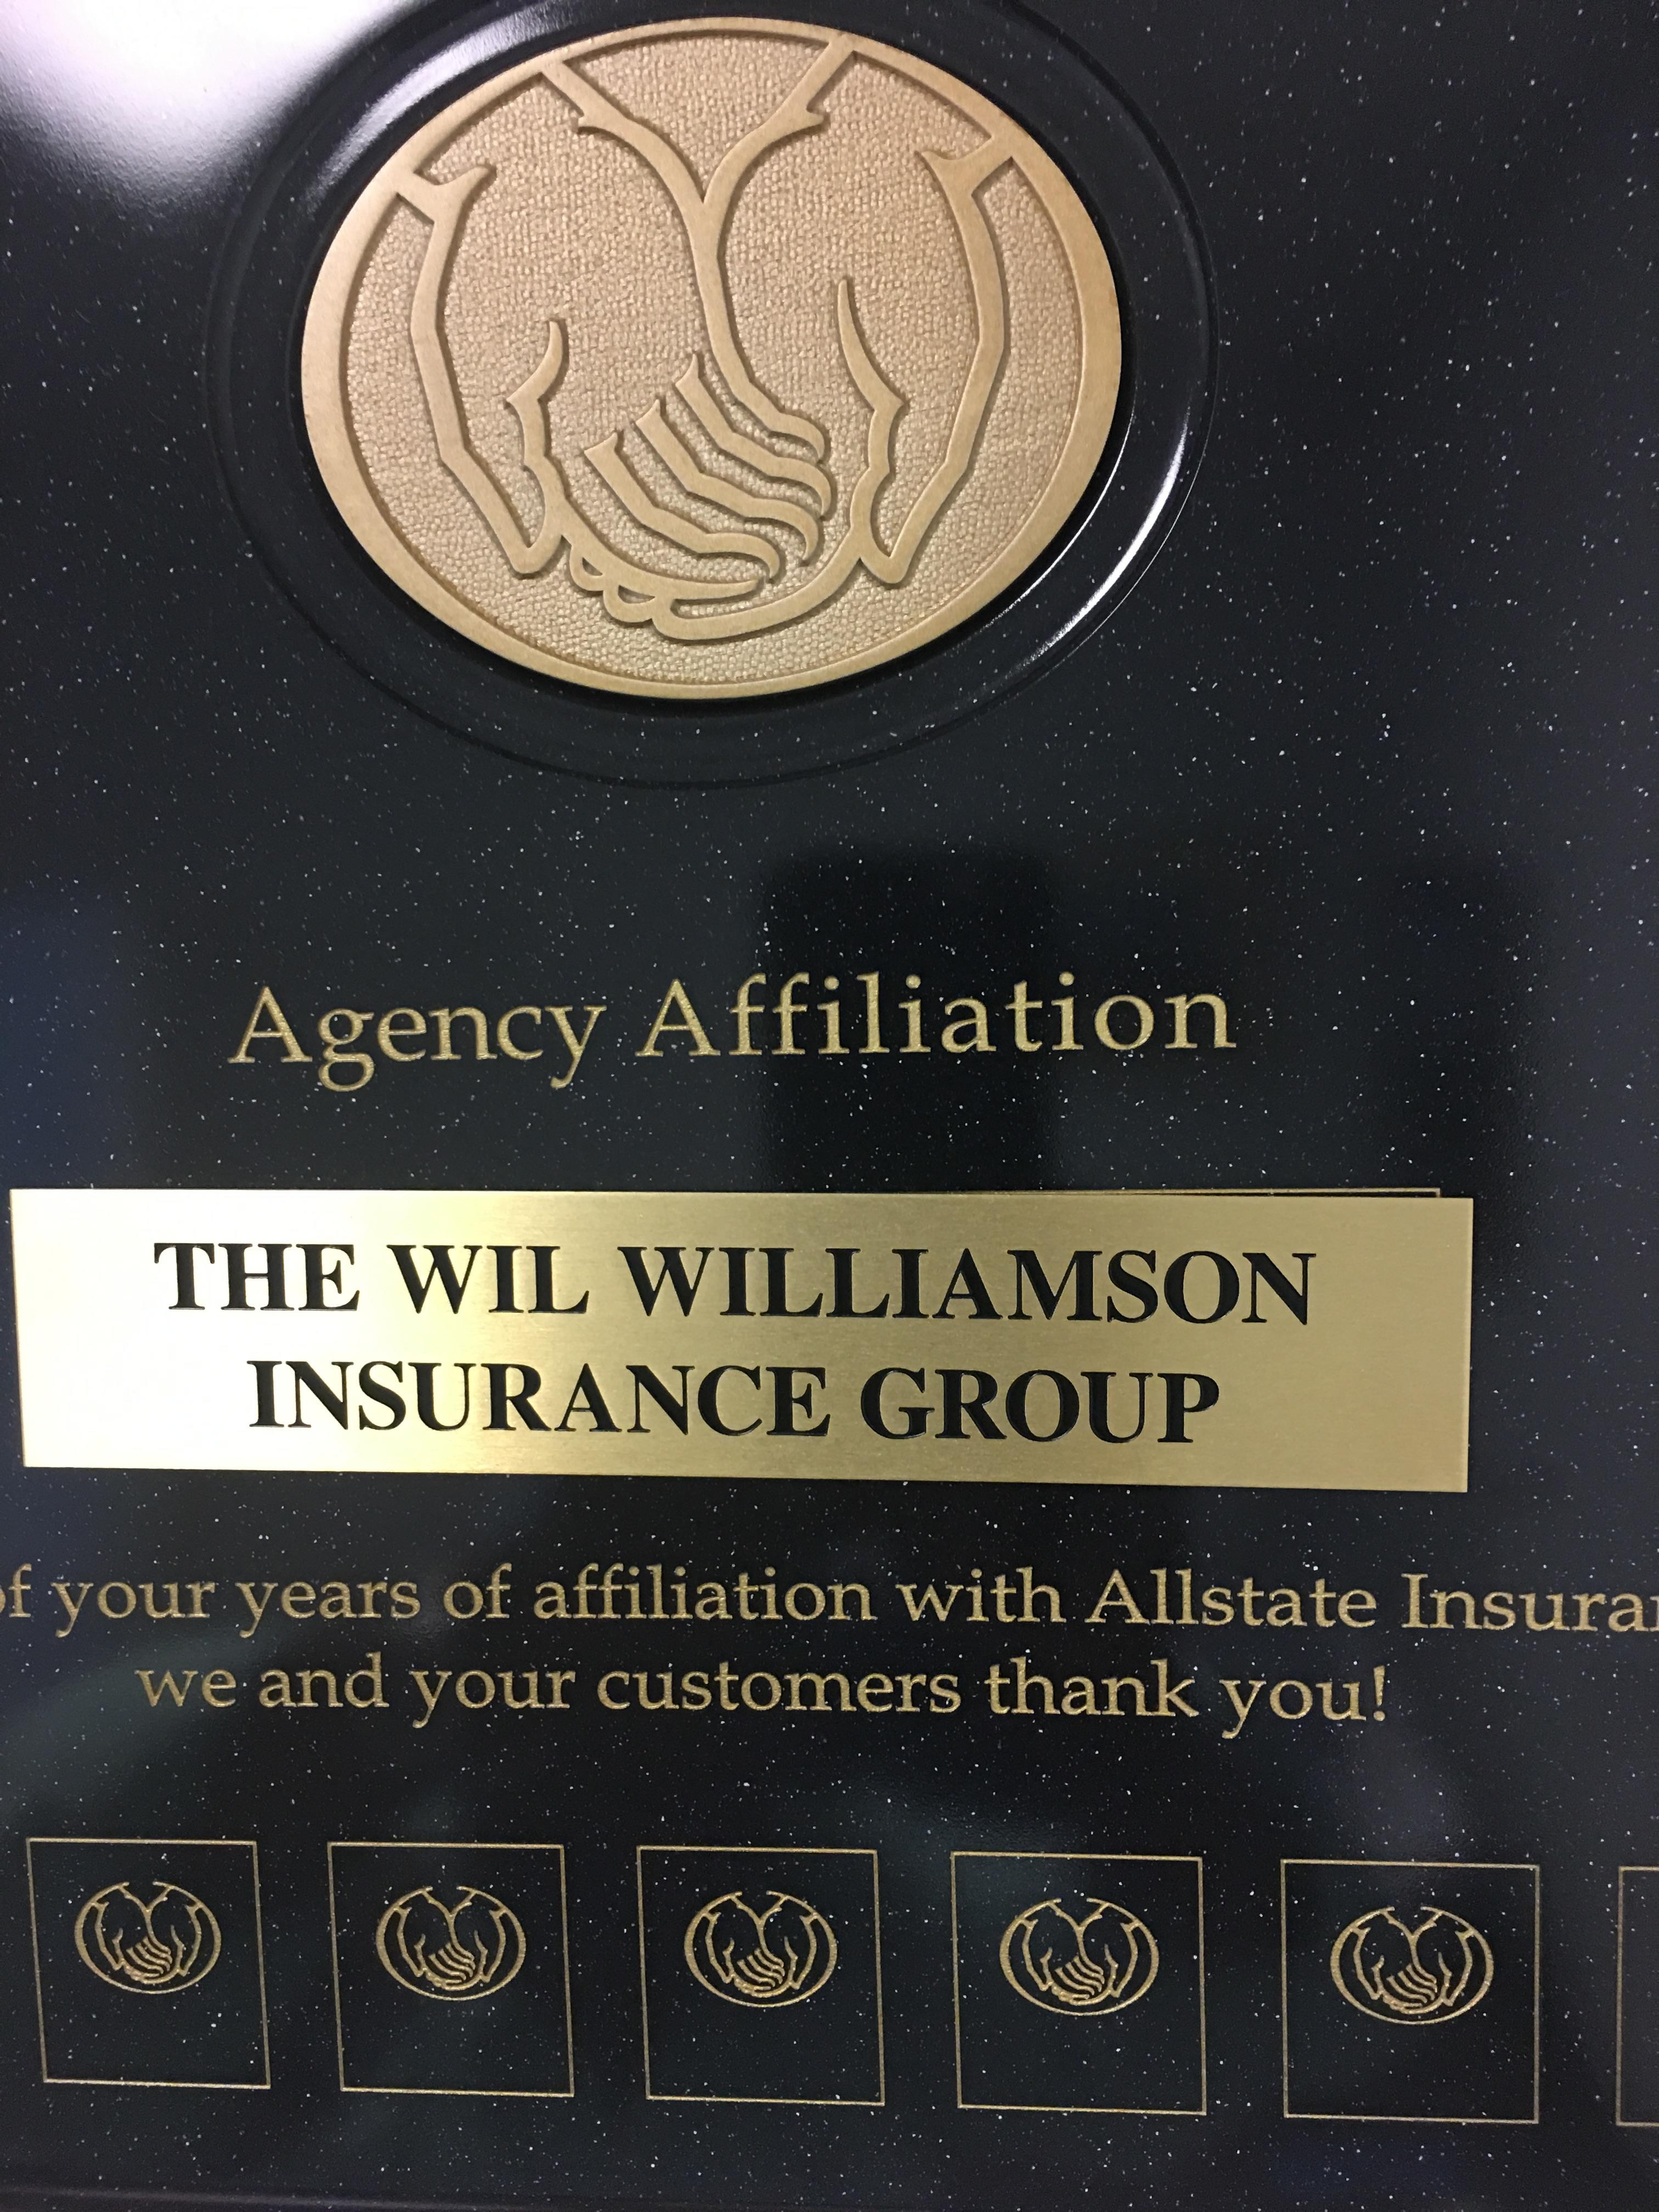 Allstate Insurance Agent: Wil Williamson image 13